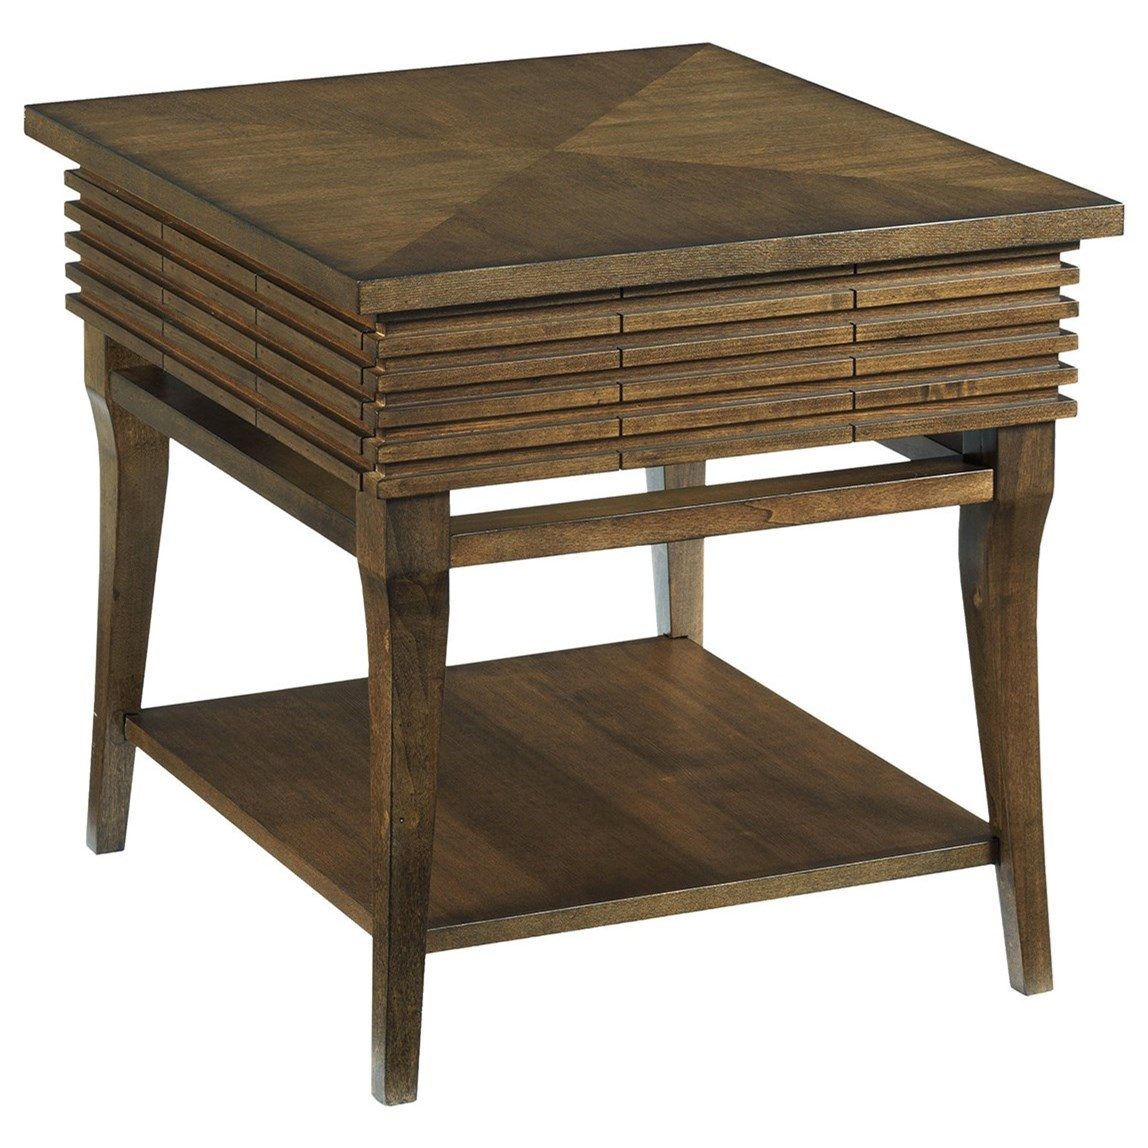 Hammary Groovy Rectangular Drawer End Table - Item Number: 579-915